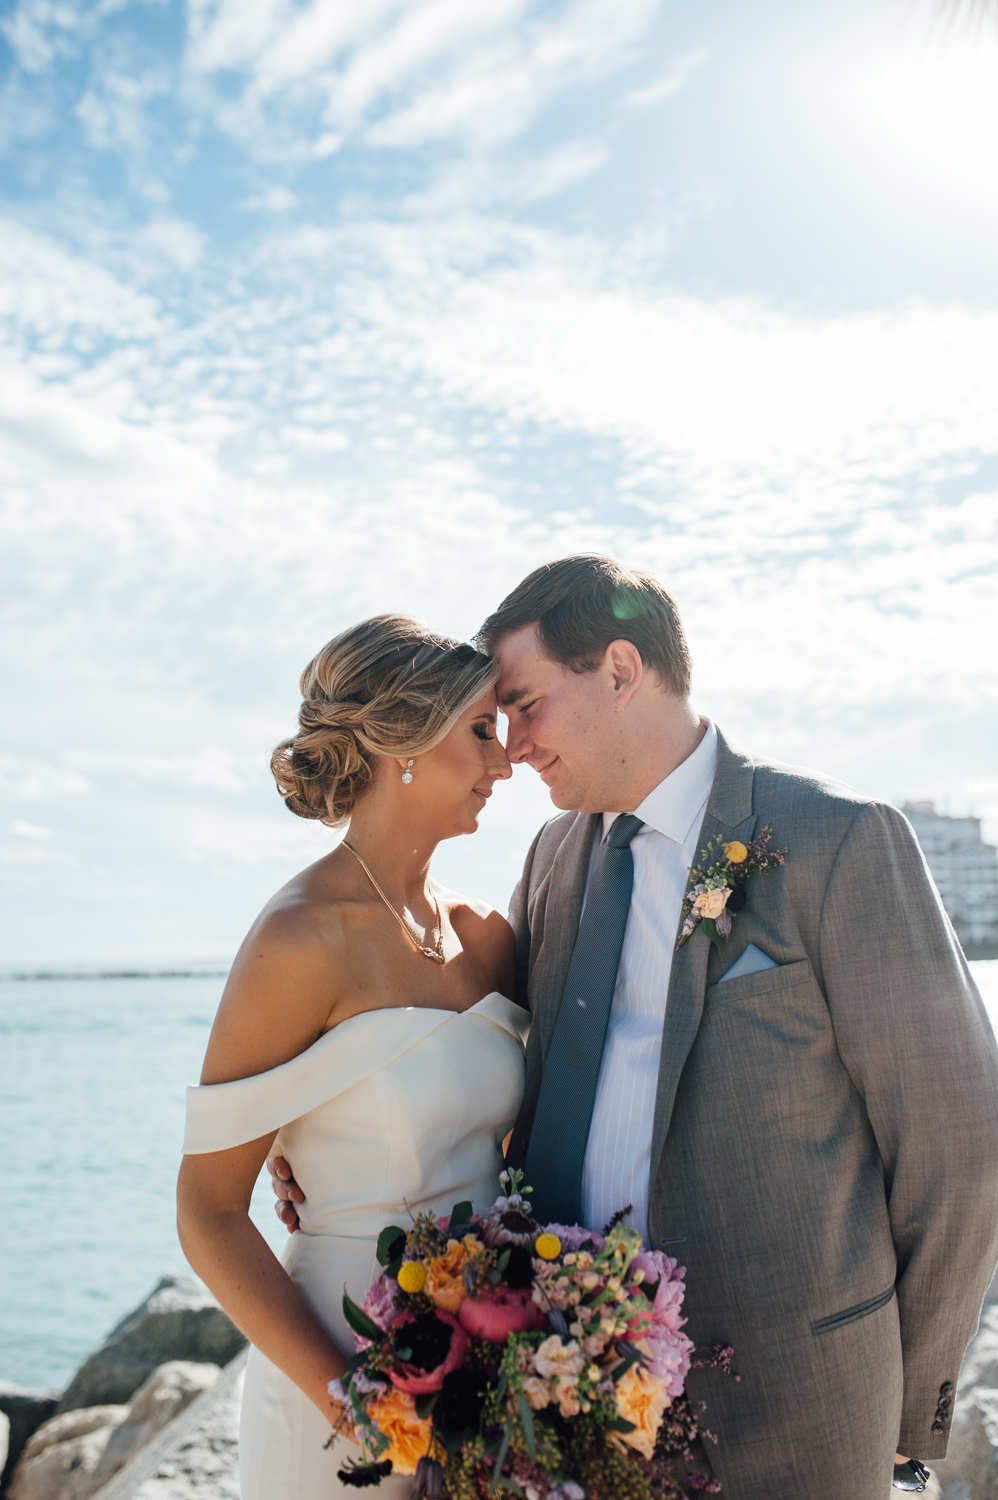 Jessenia Gonzalez Photography-South Point Park-Miami Beach-Wedding-Bridesmaids-groomsmen (48 of 48).jpg